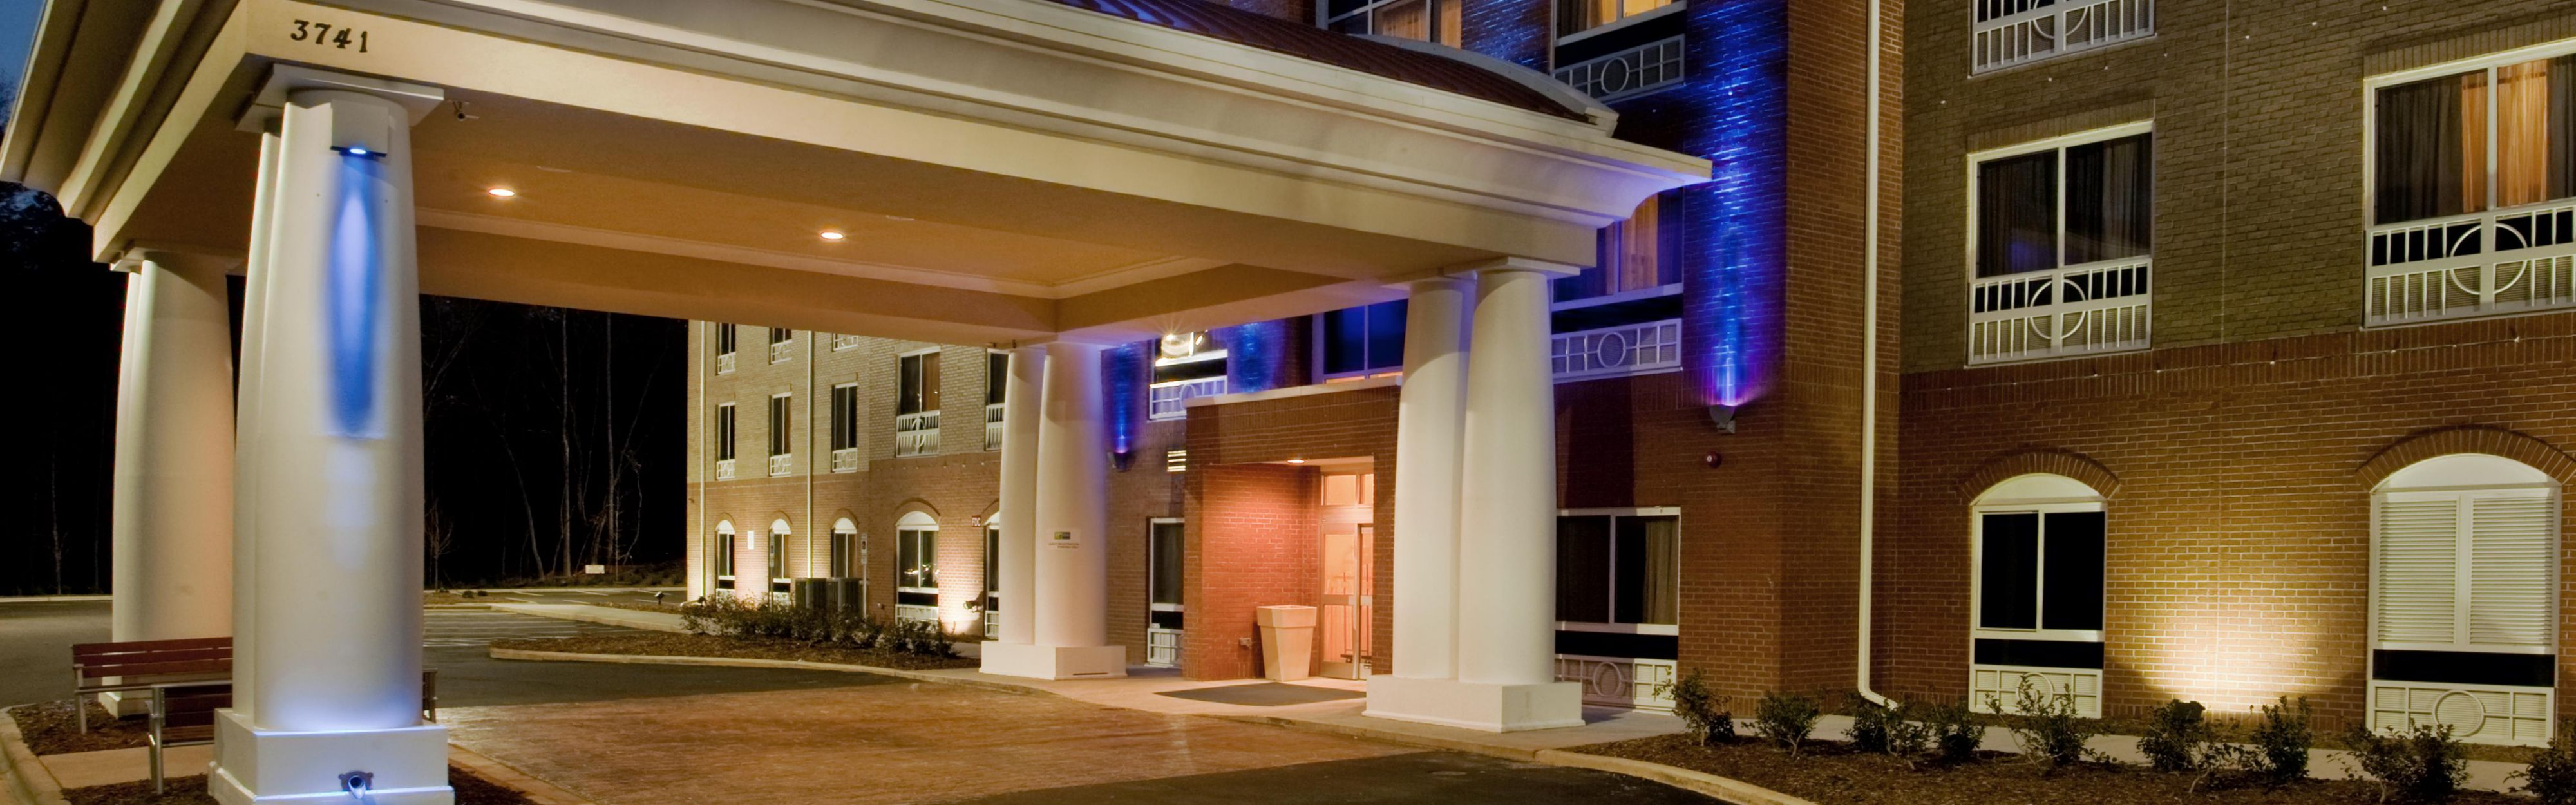 Holiday Inn Express & Suites Raleigh SW NC State image 0